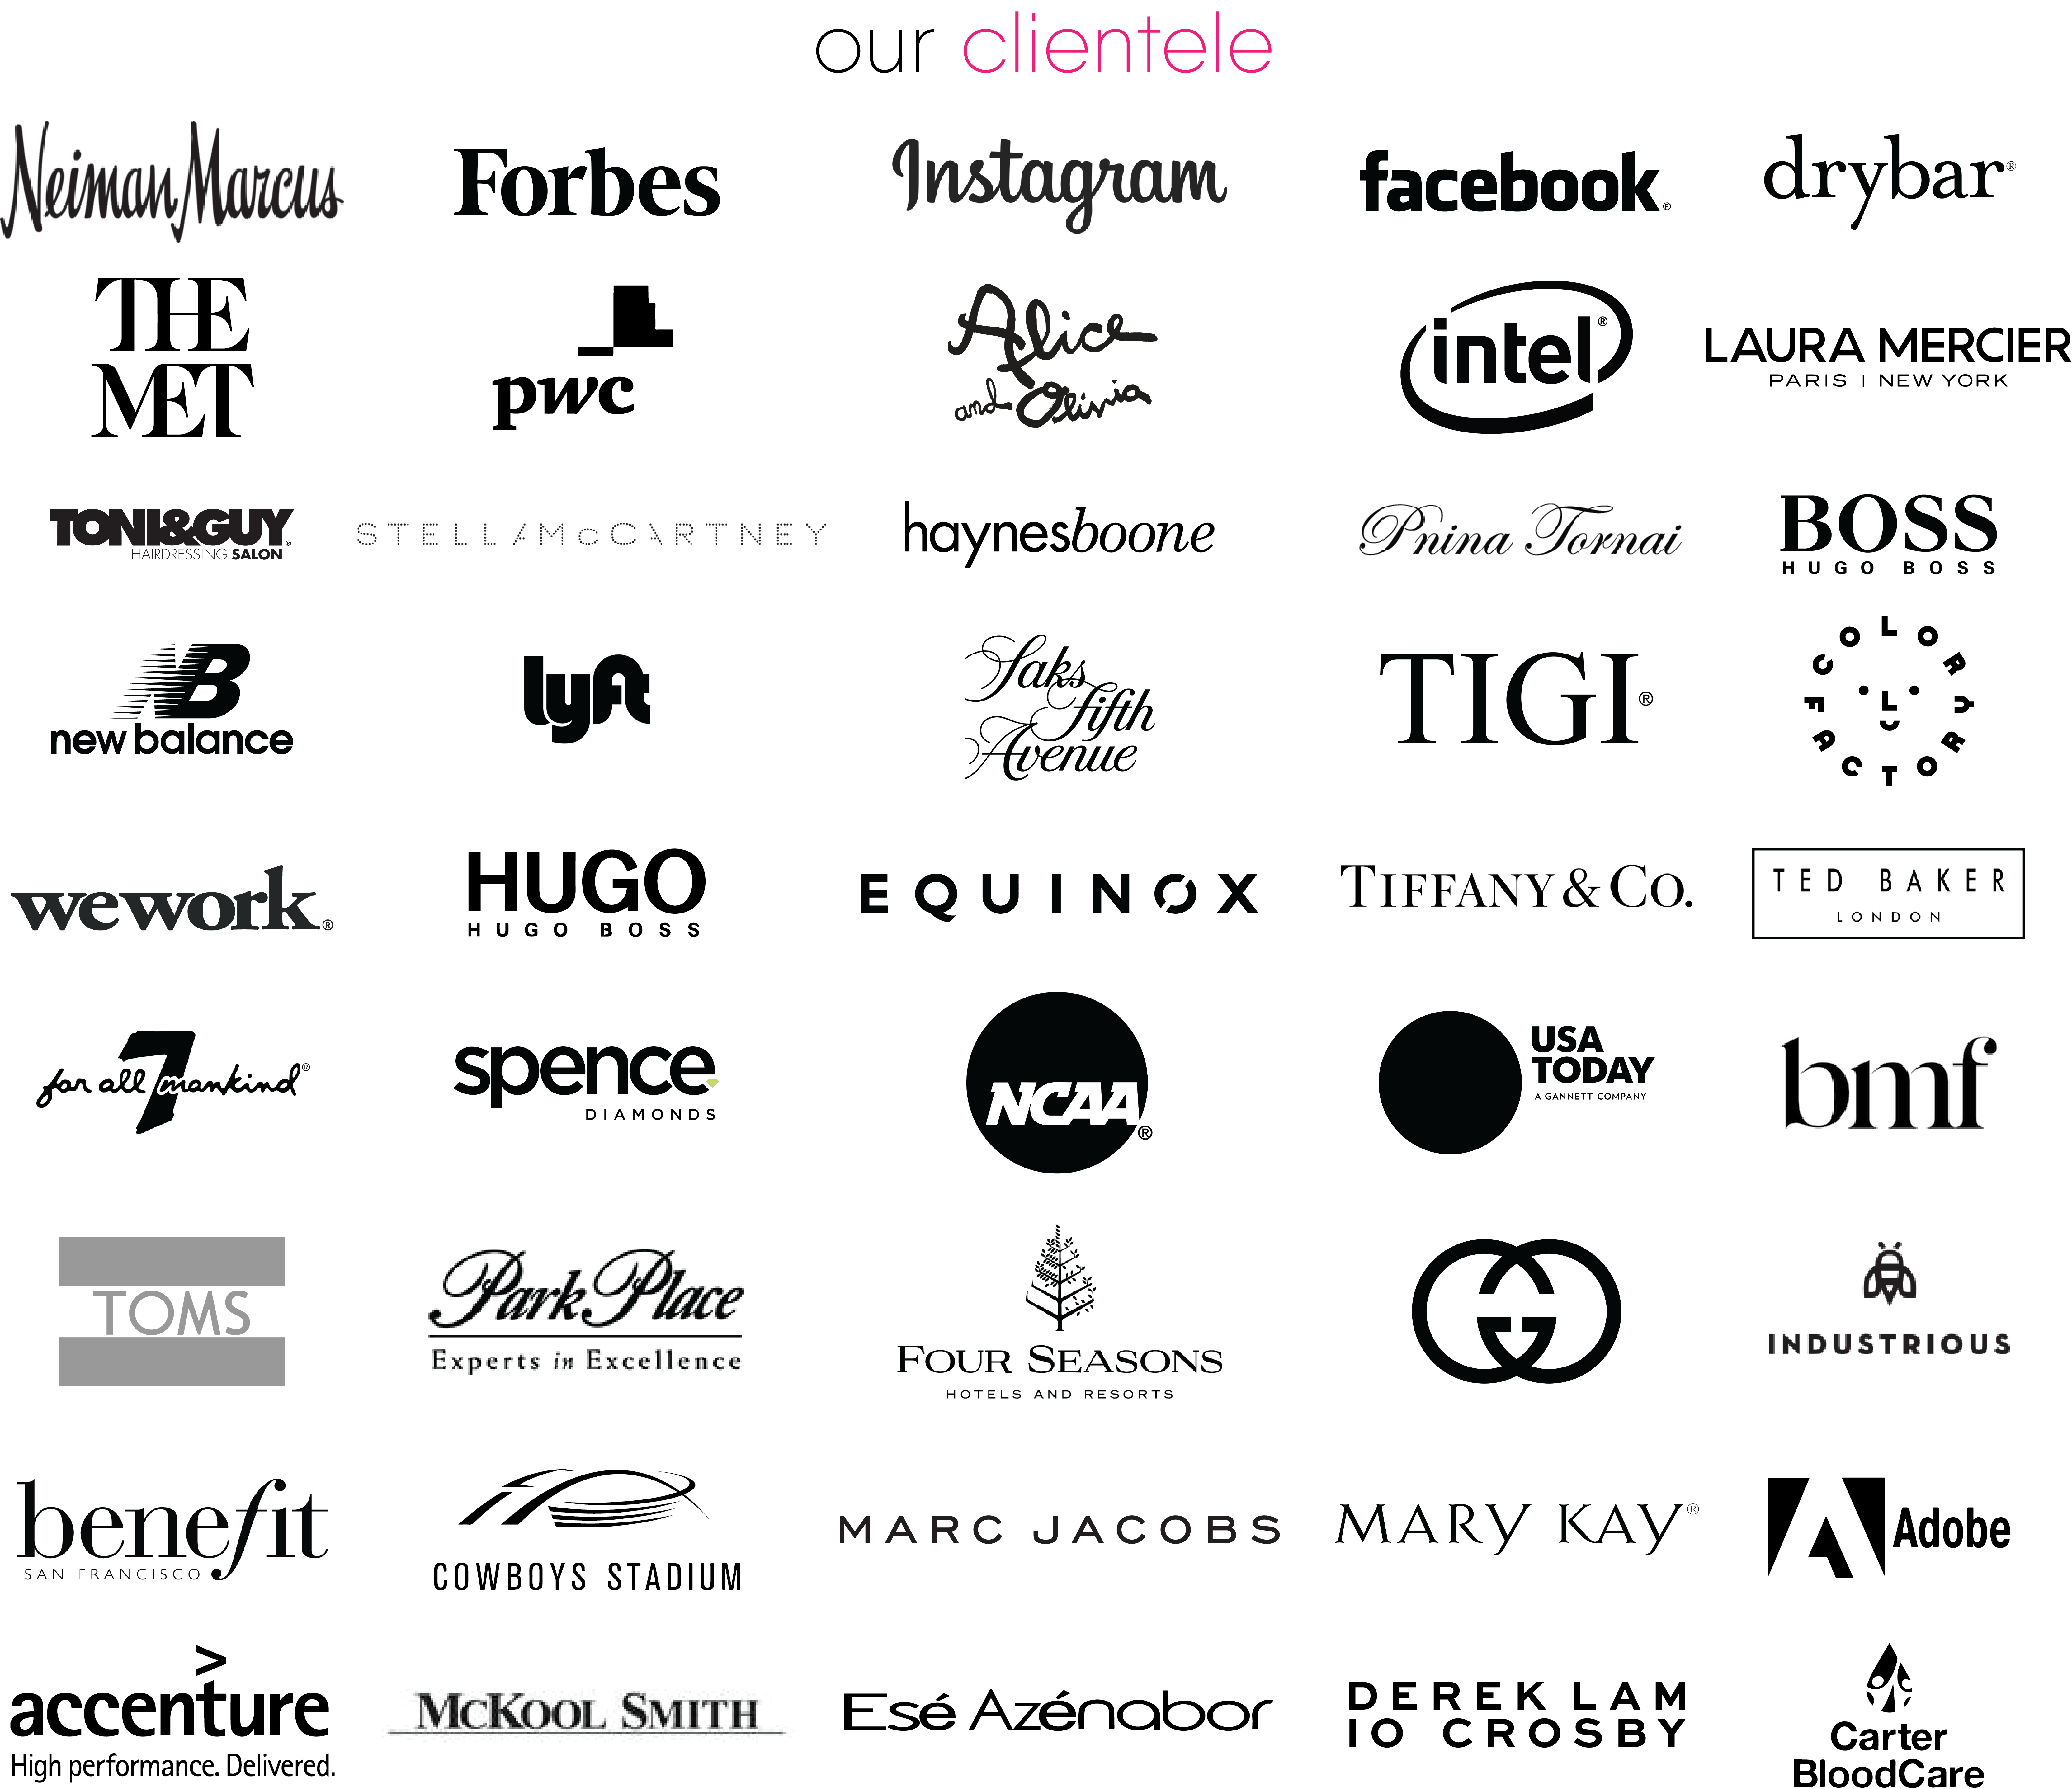 2020-updated-clientele-list-clients-for-website-shrunk-in-line-grid-5-.png